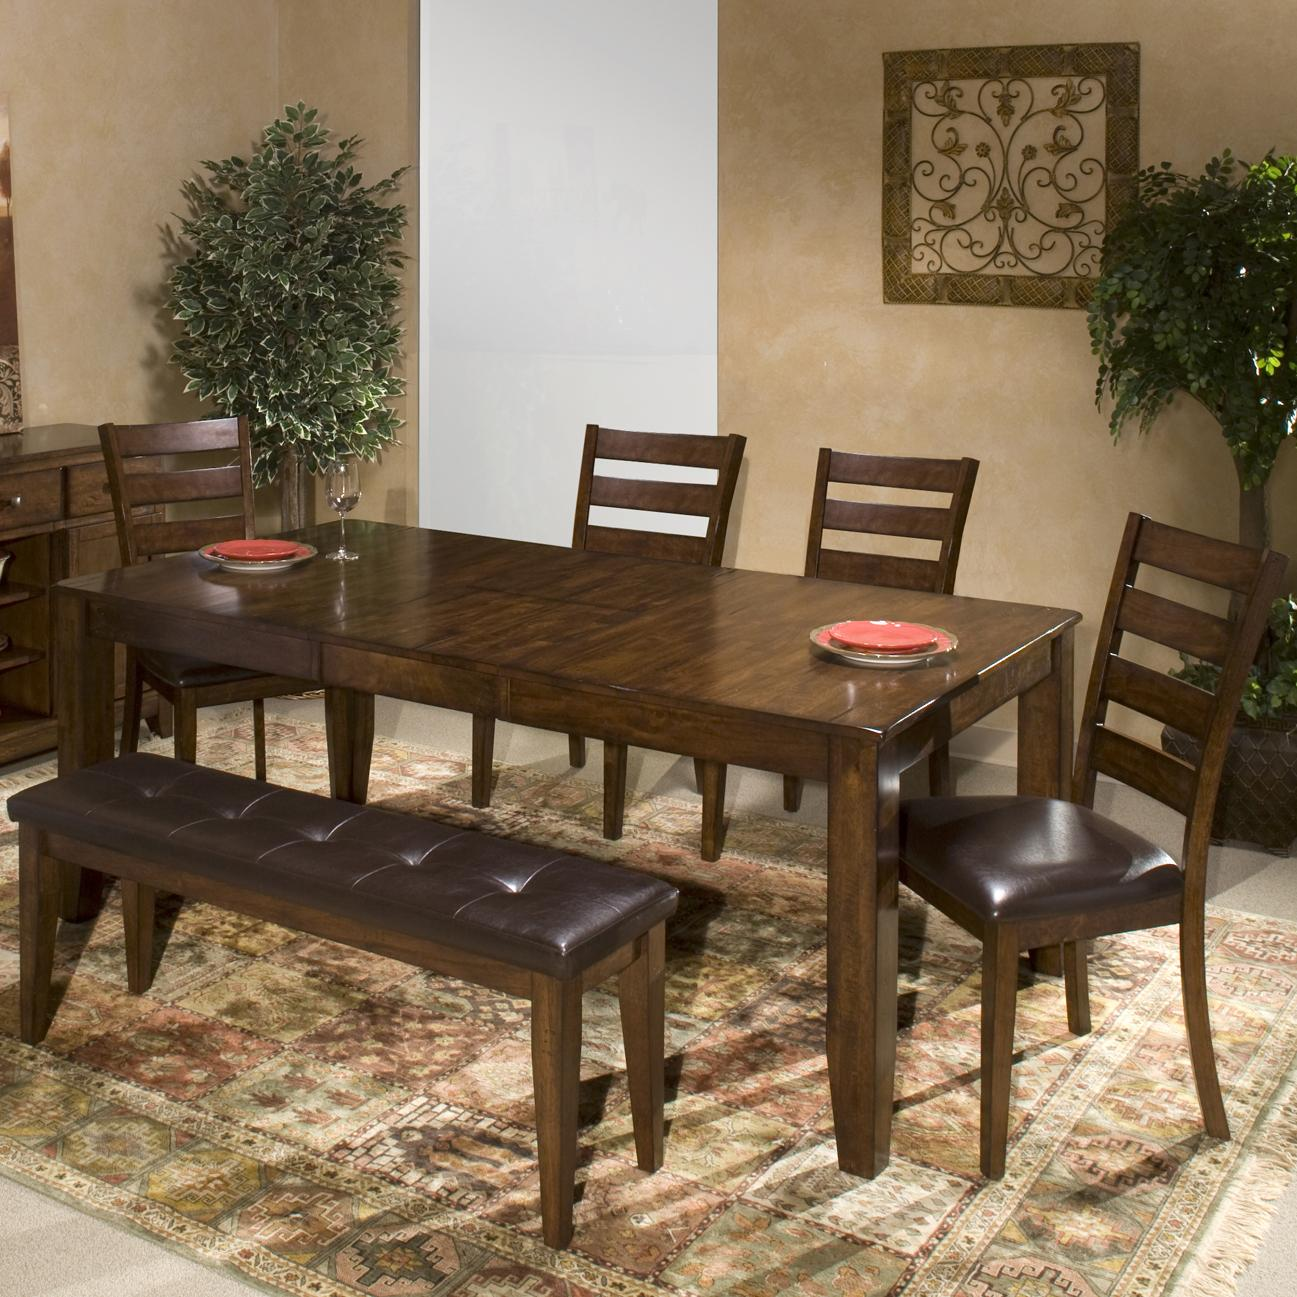 Kona 6 Piece Mango Wood Dining Room Set by Intercon at Darvin Furniture